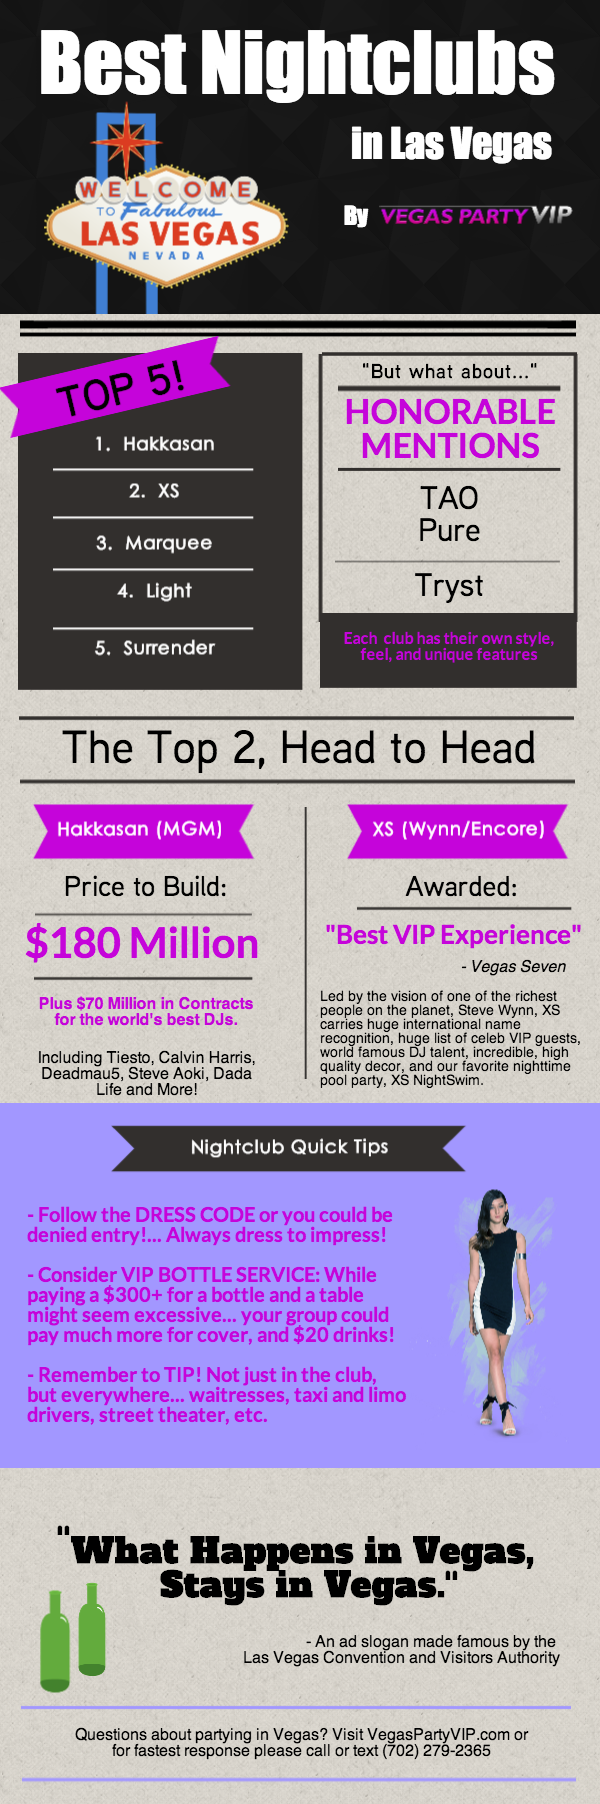 Top Nightclubs in Las Vegas 2014 Infographic